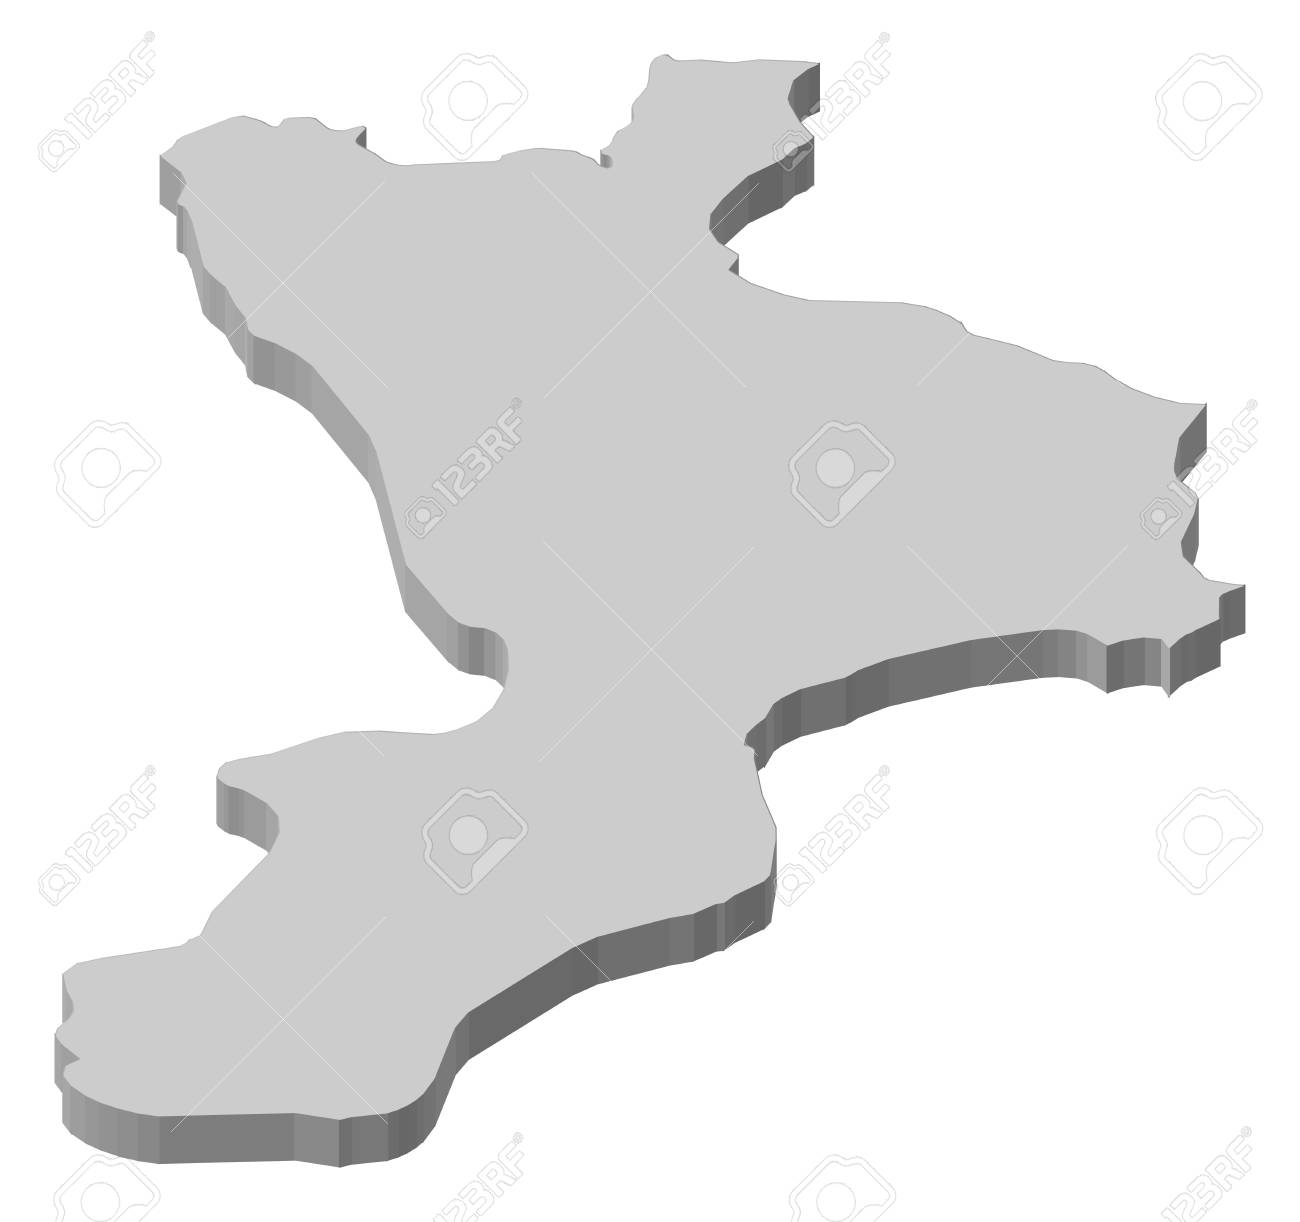 Map Of Calabria A Province Of Italy Royalty Free Cliparts Vectors